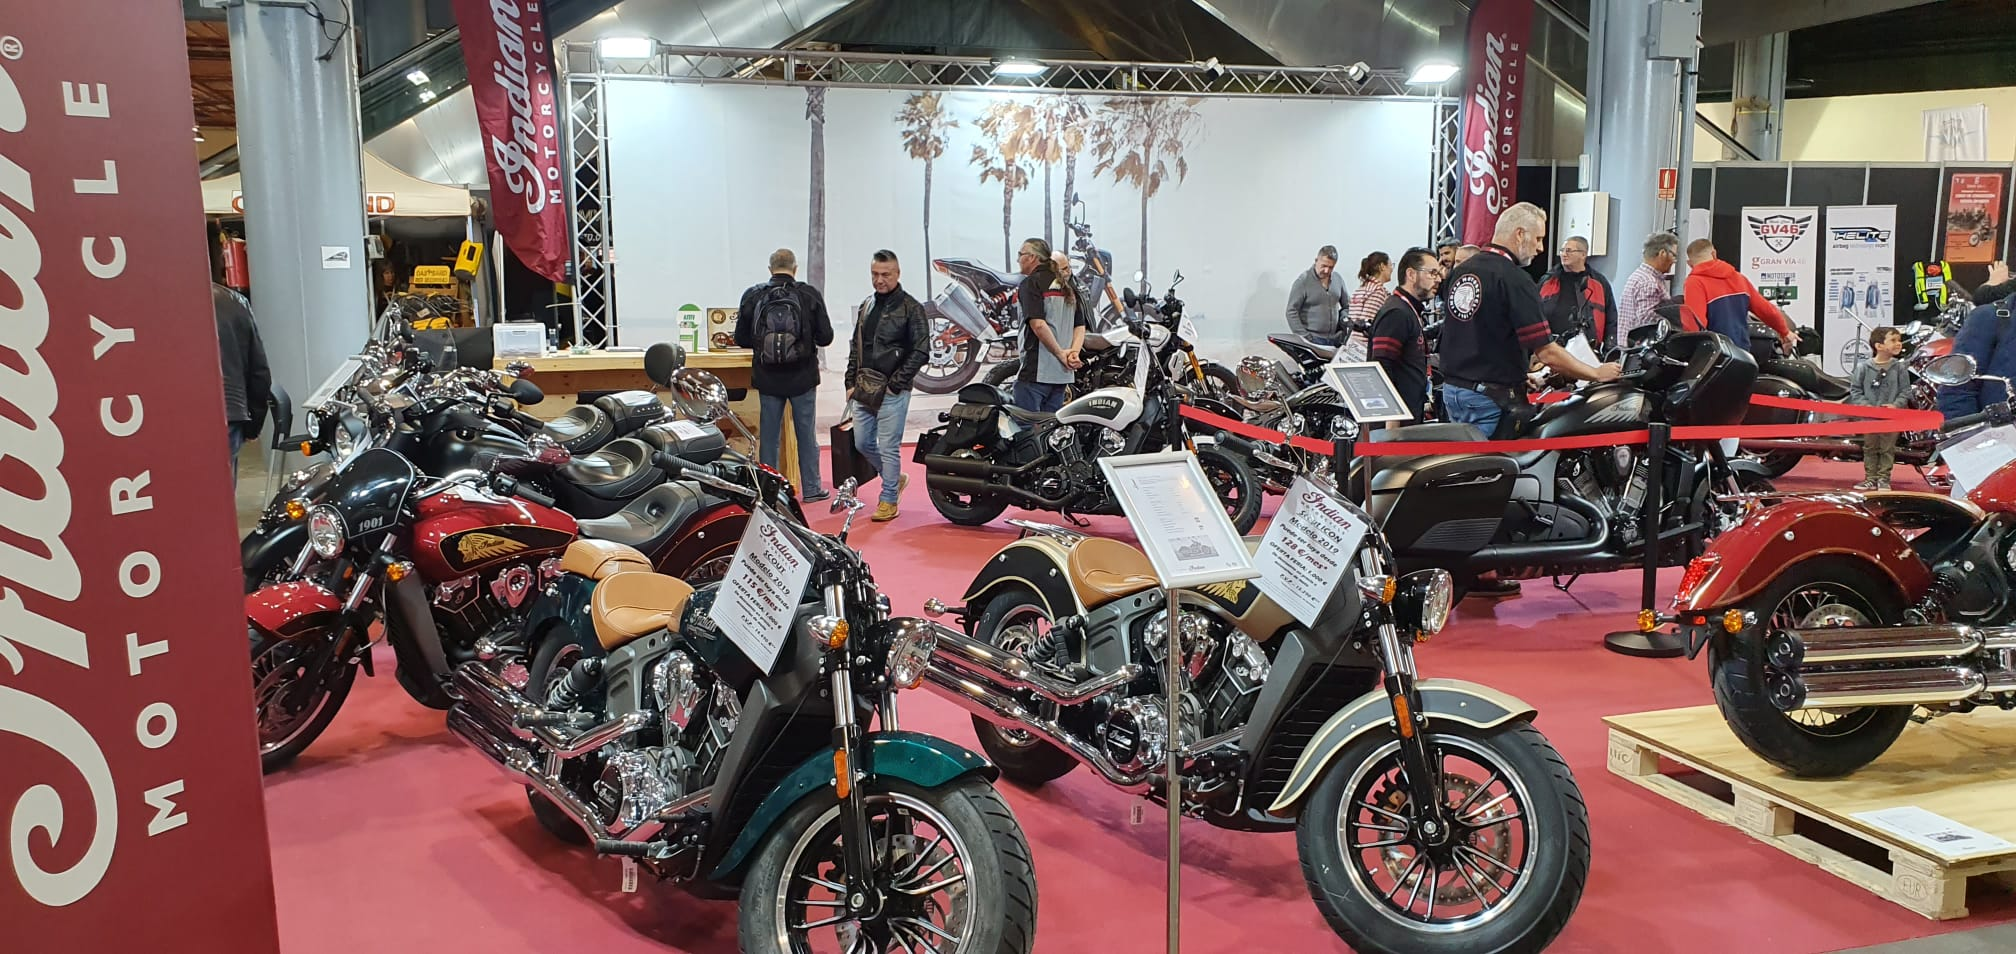 venta motos custom feria 2ruedas motocasionweb indian